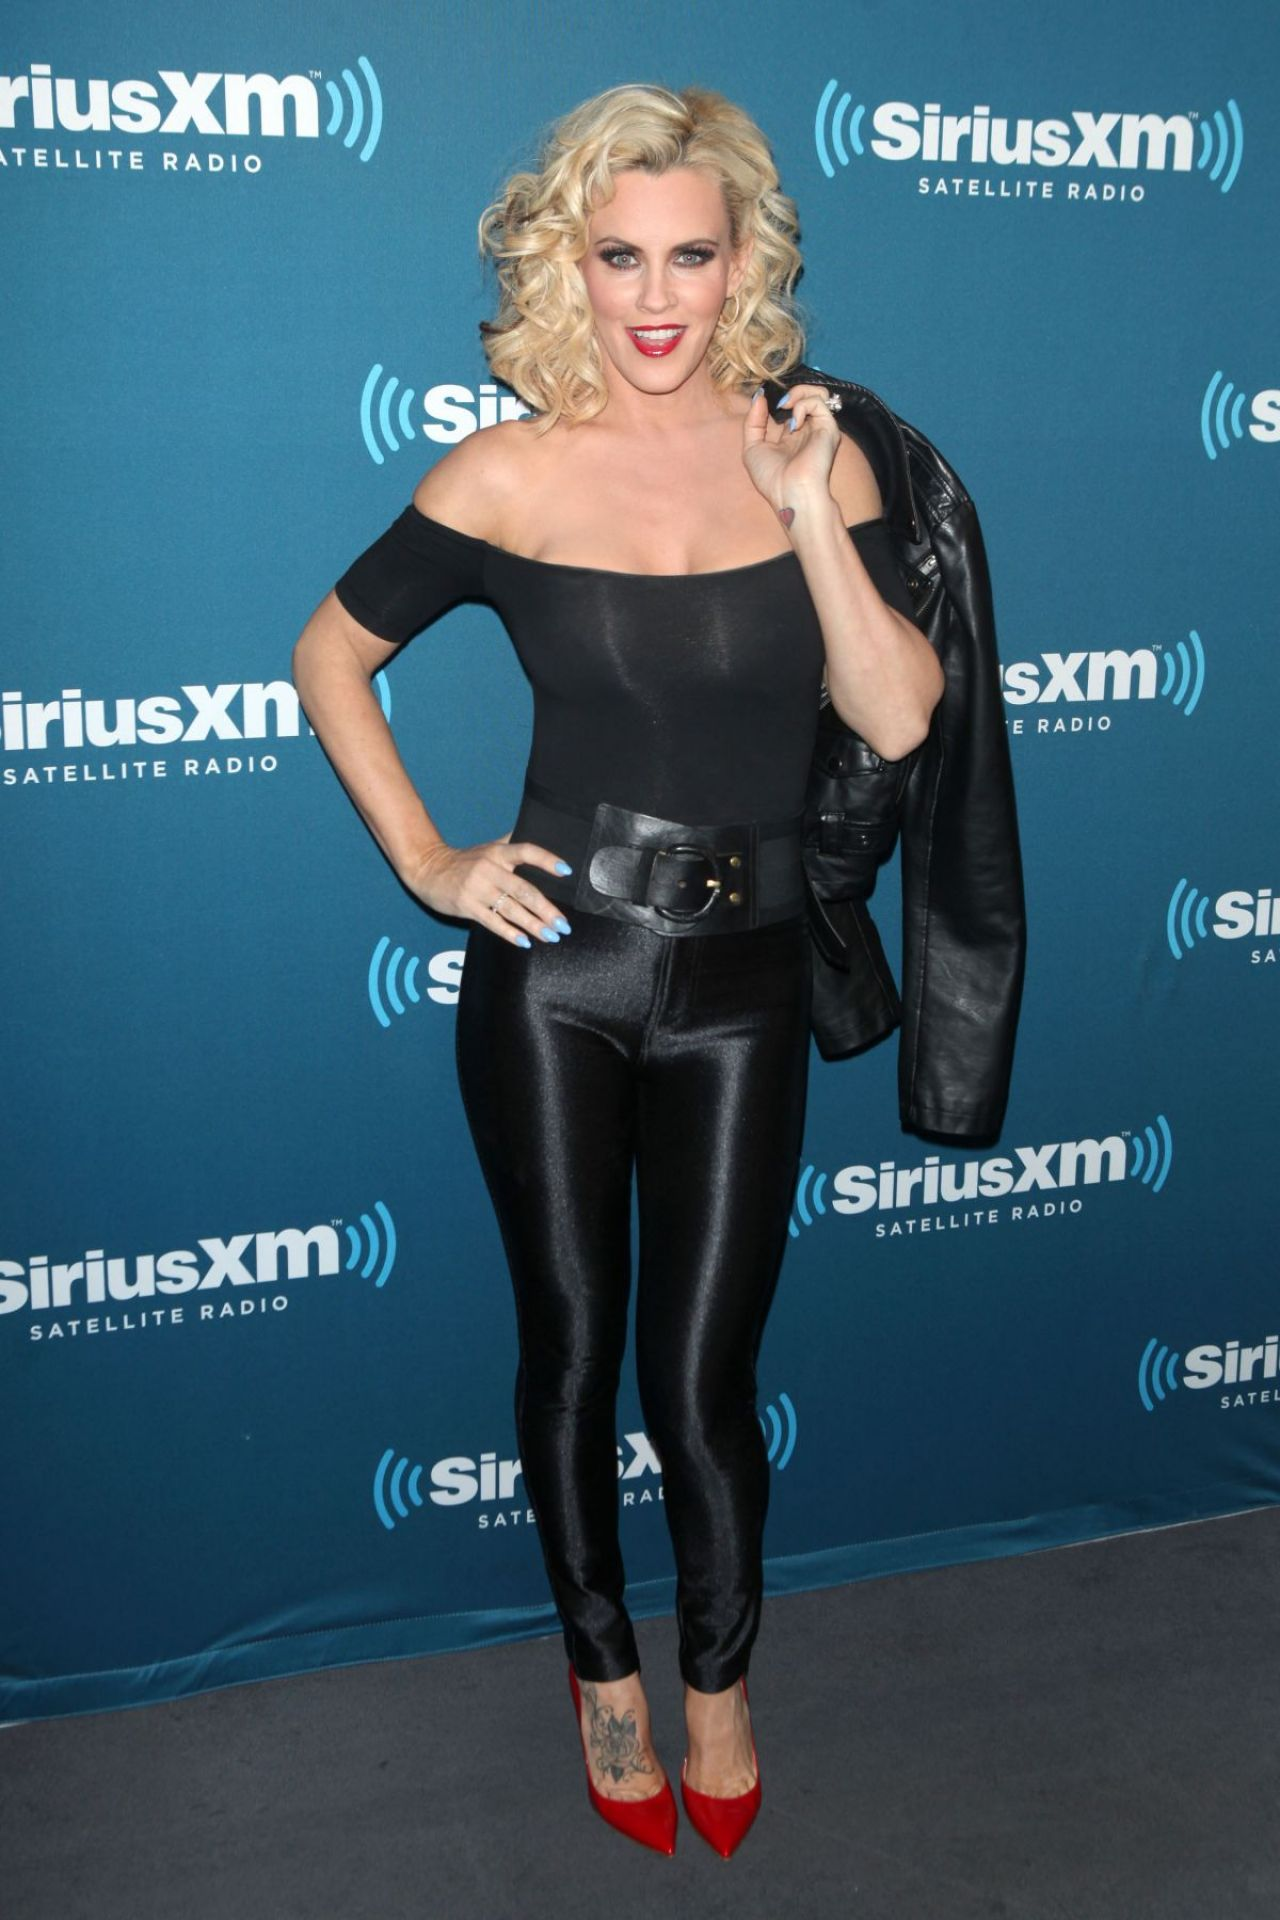 jenny mccarthy - halloween costume party 2014 at siriusxm studios in